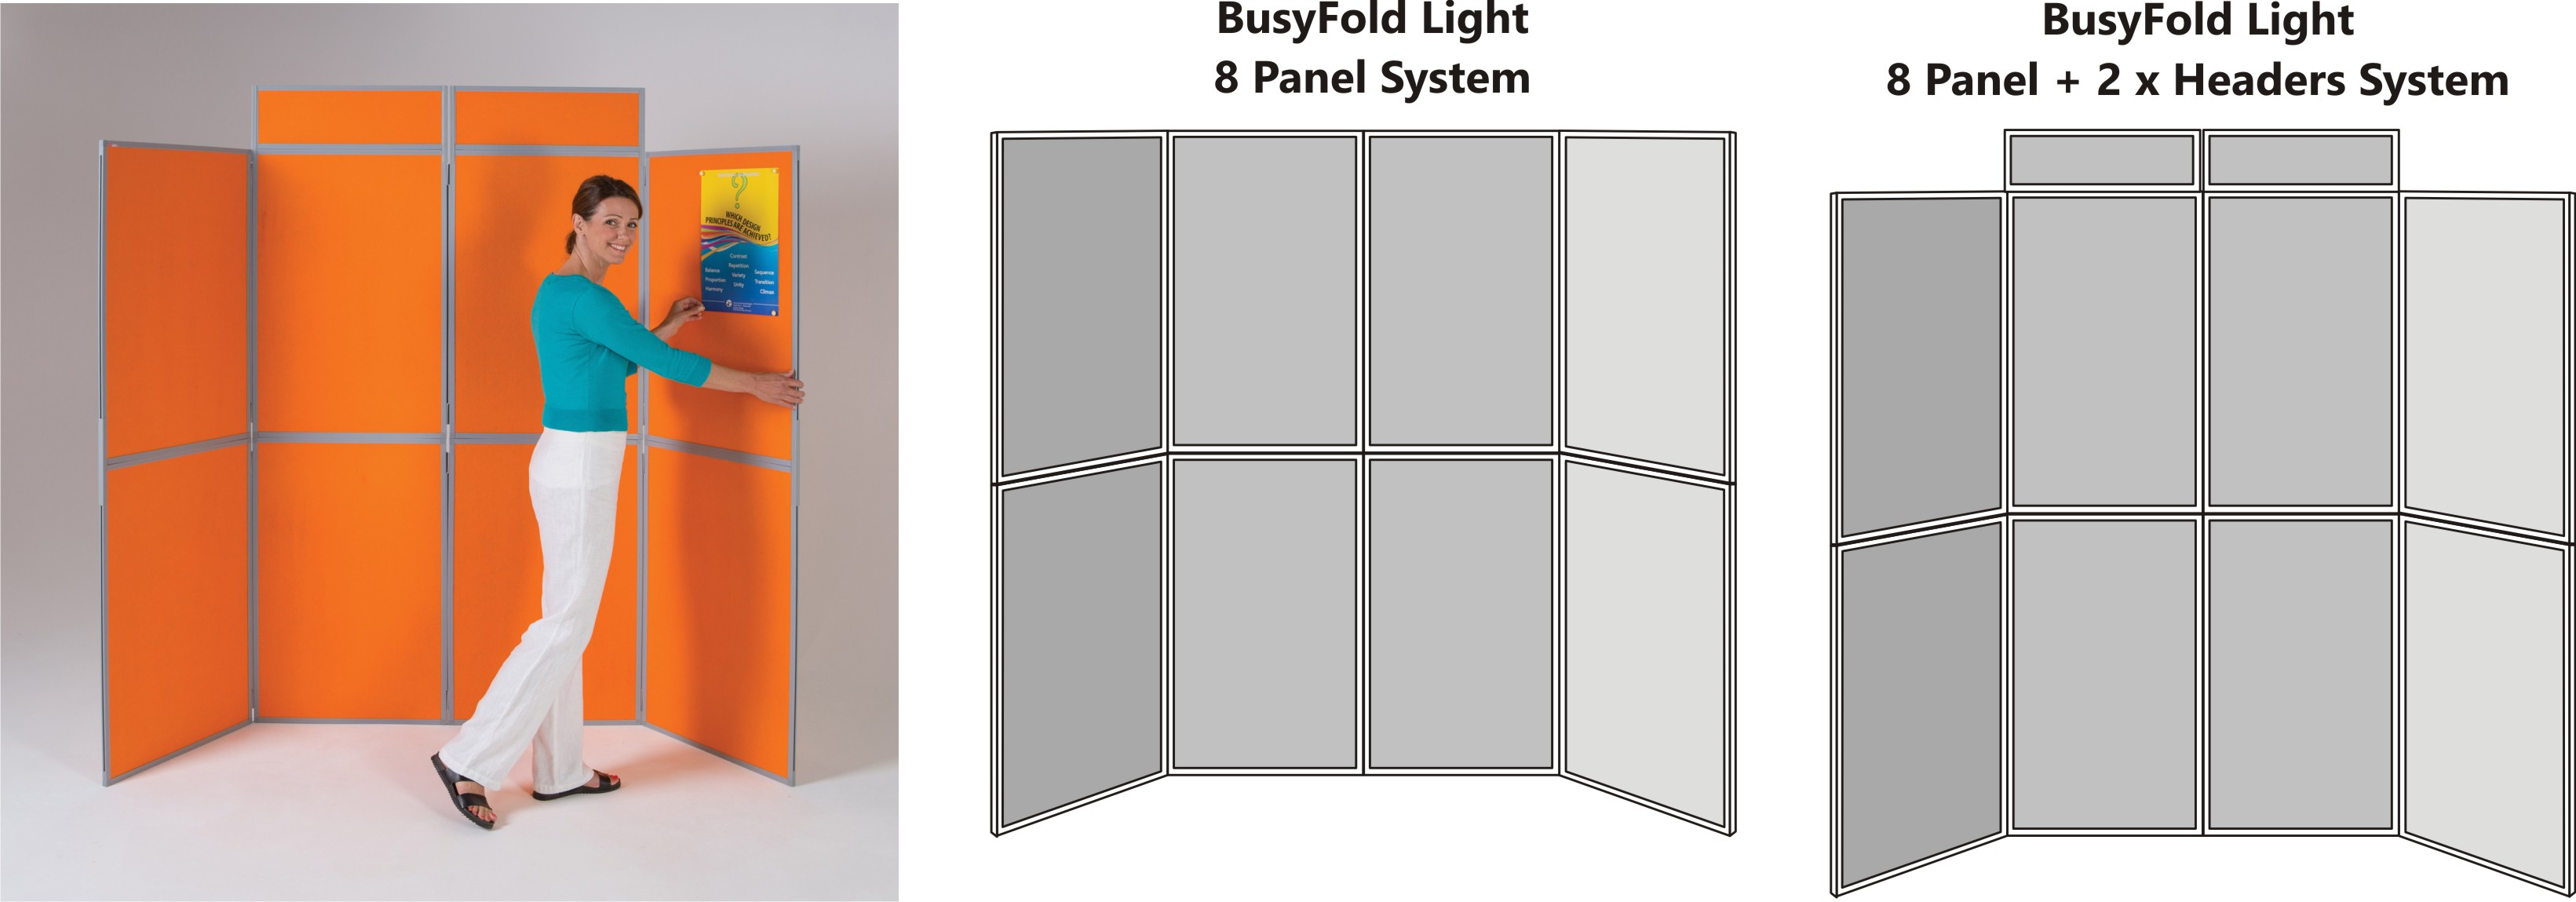 BusyFold Light 7 Panel Display System